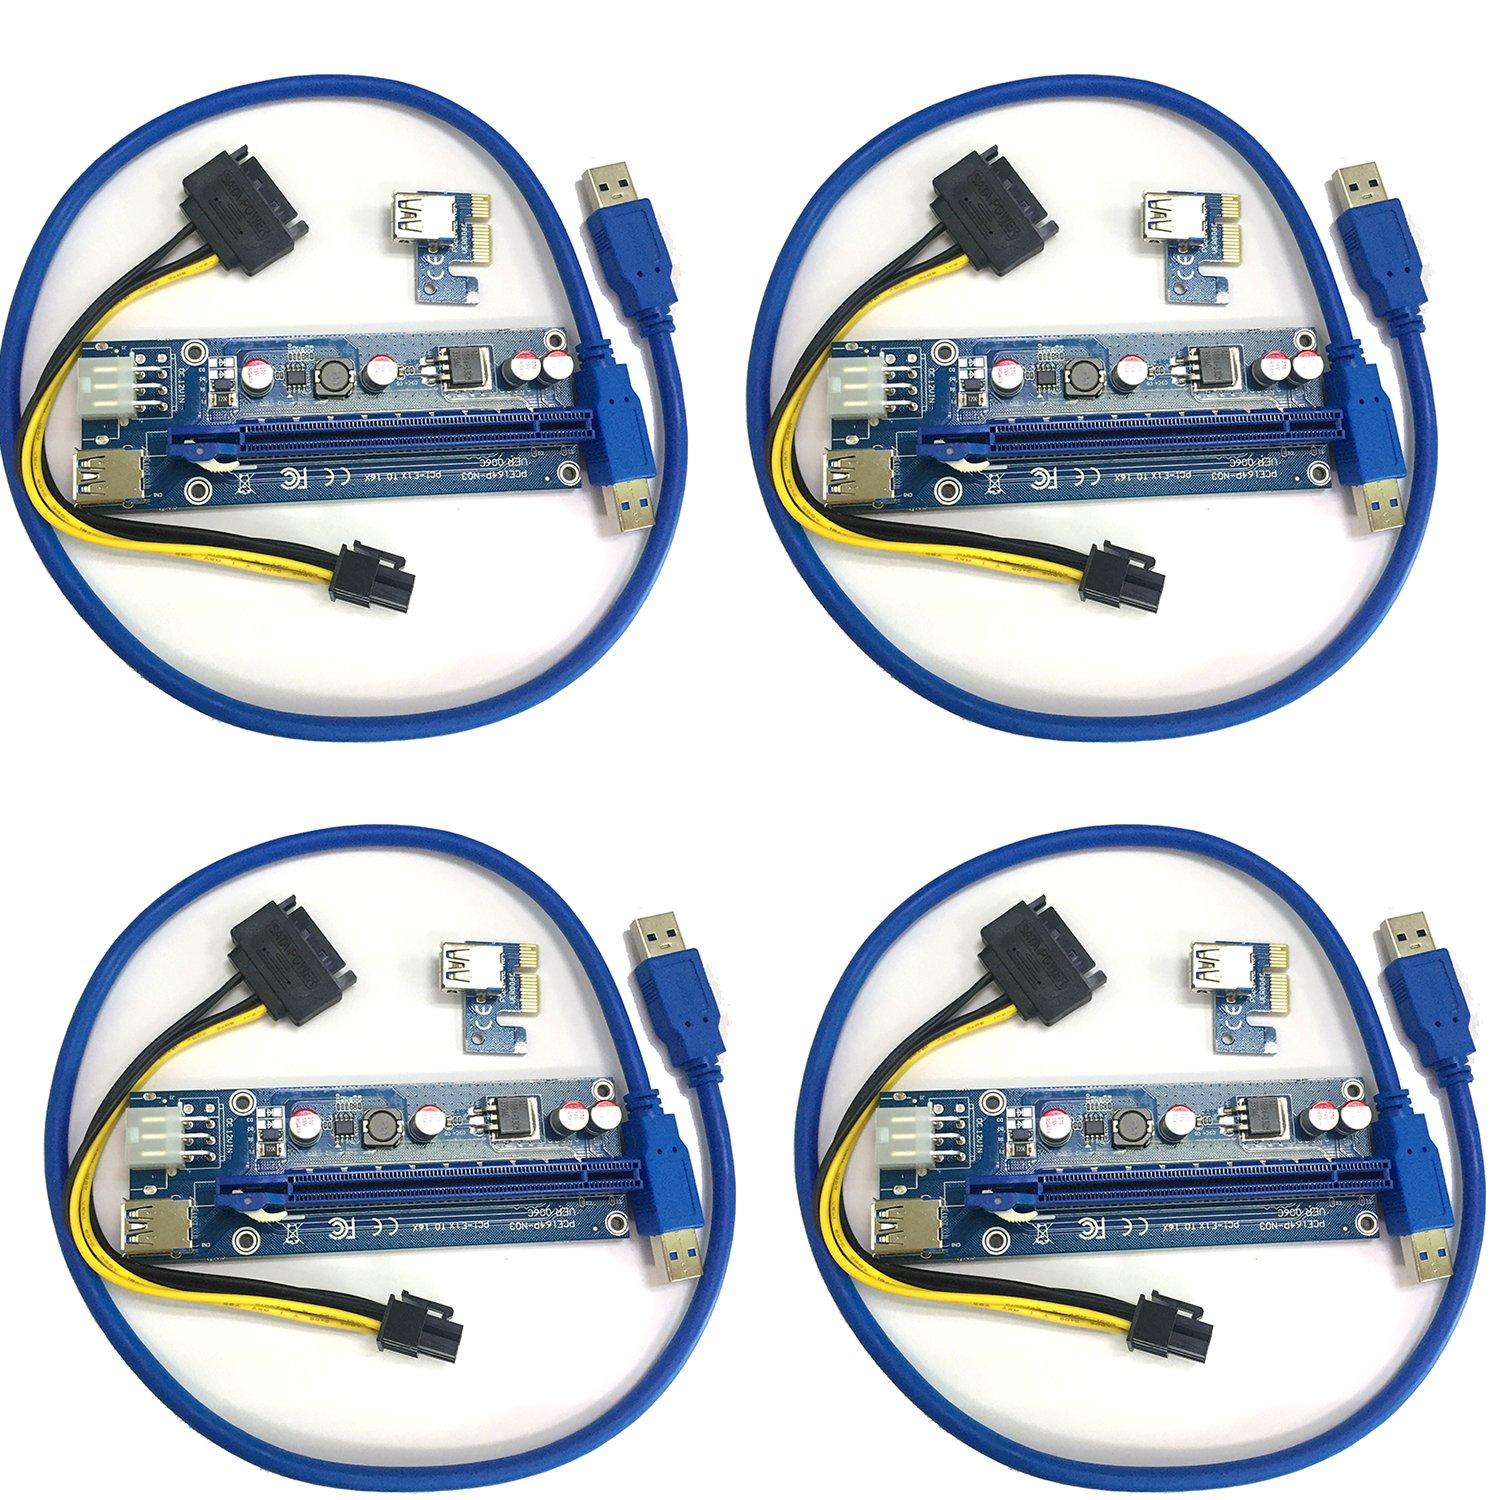 4 Pack - PCI-E 16x to 1x Power Riser Adapter Card With 6 Pin Power Connector GPU Riser Extender Cable and USB 3.0 Cable - Mining Dedicated Graphics Card Extension Cable (4 Pack)